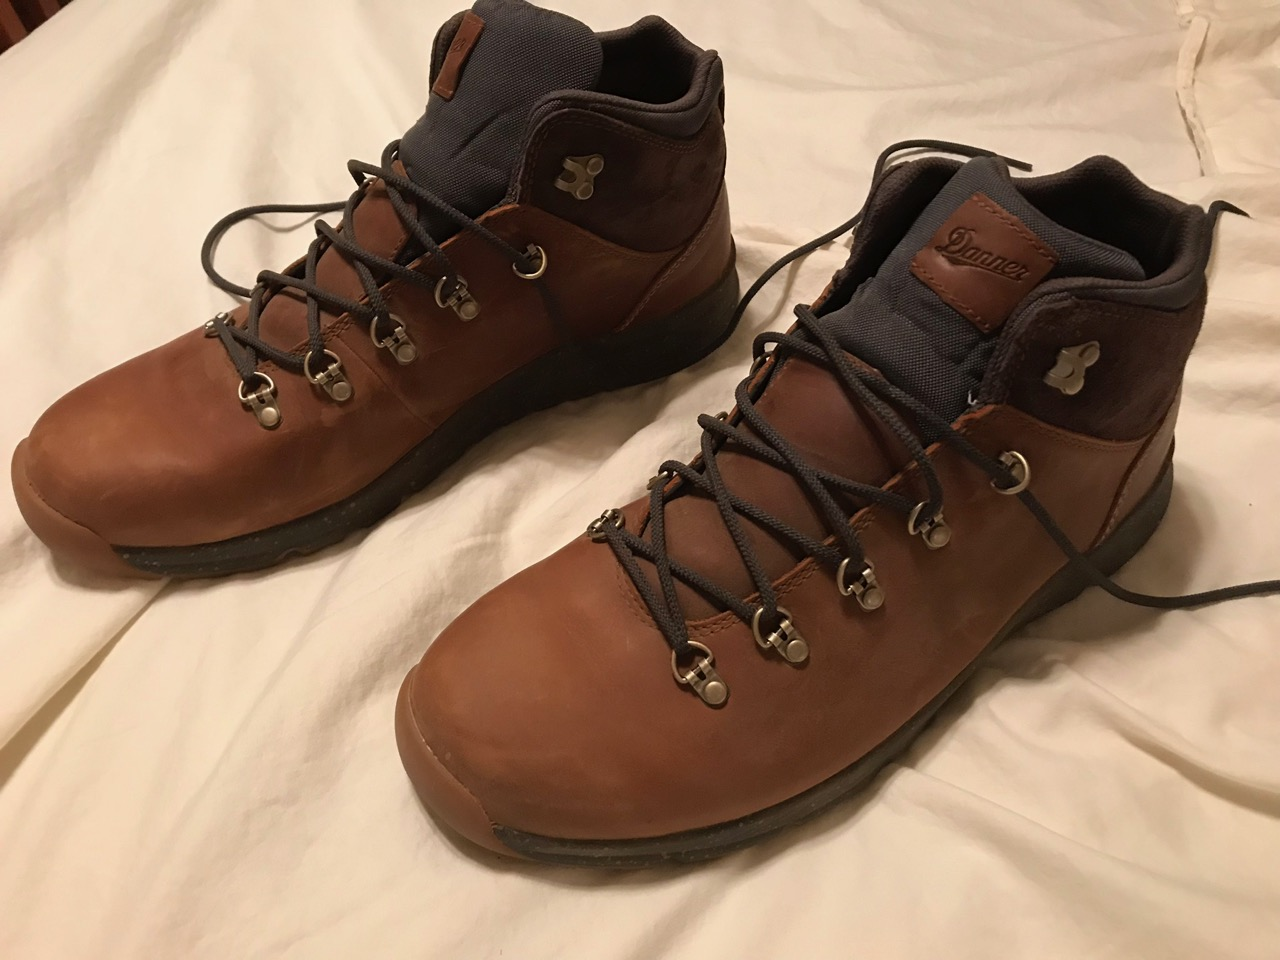 5e02aa9642f For sale: Danner Boots Size 12 $60 Mountain 503 | The Fedora Lounge